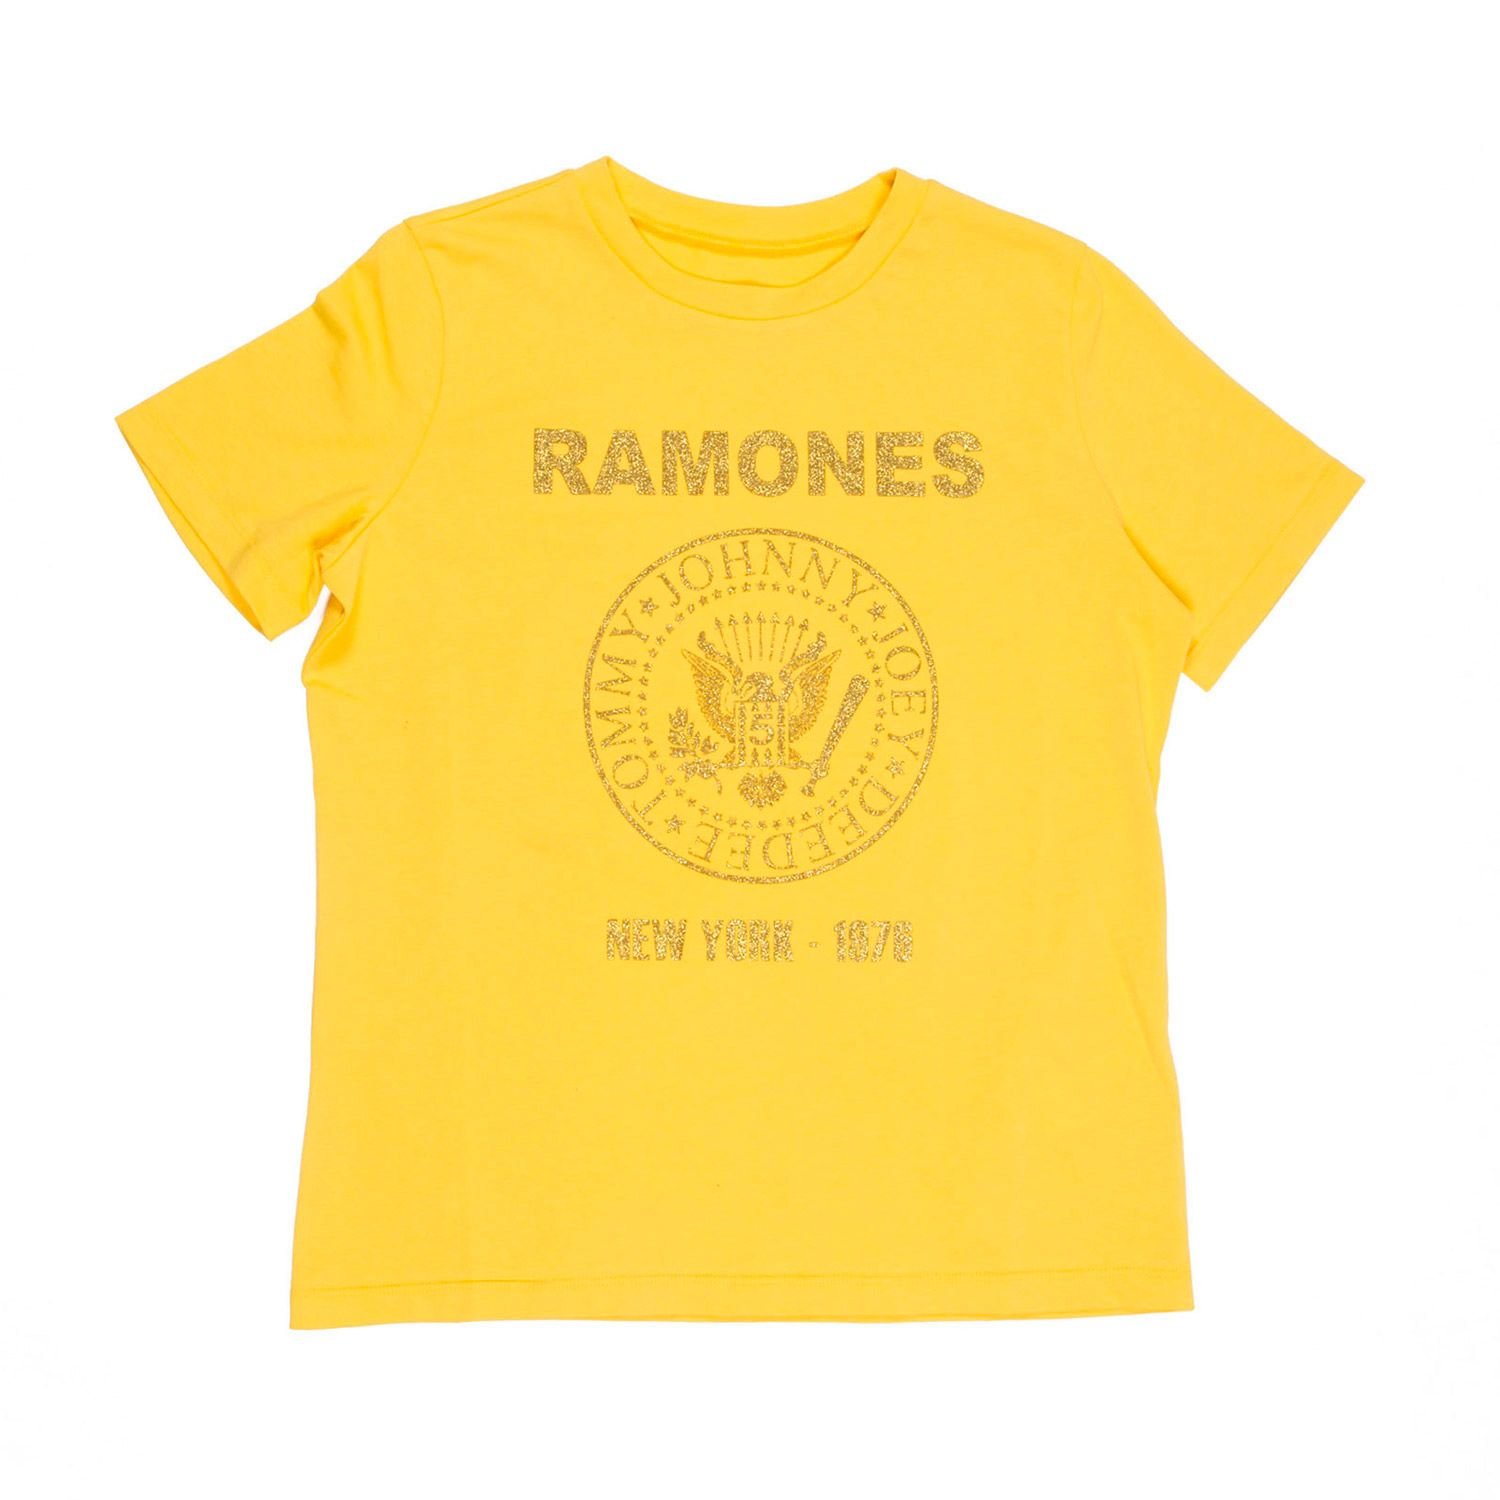 department 5 slim you ramones glitter woman t-shirt D19J02